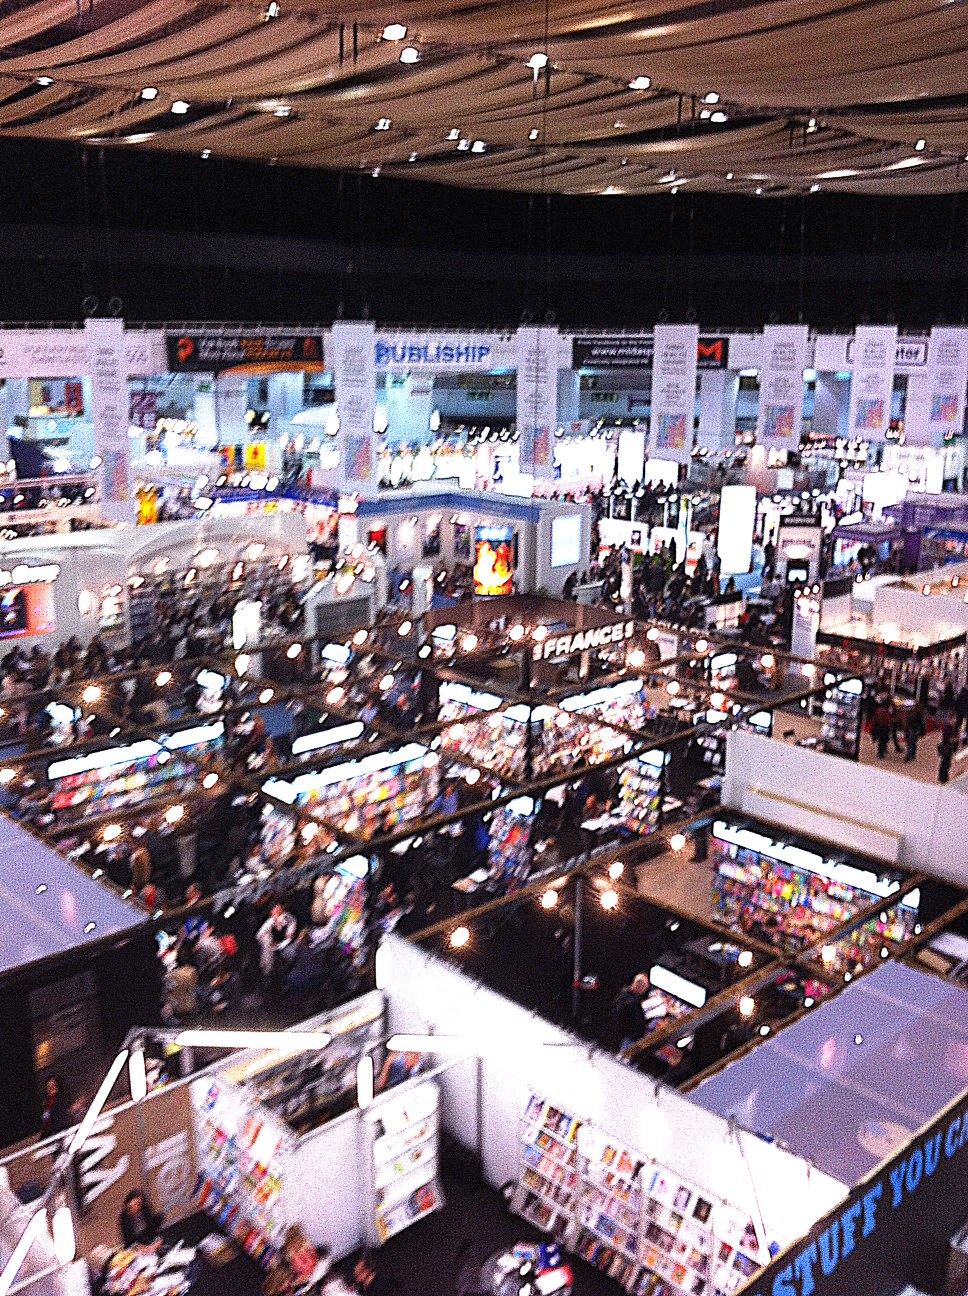 London Book Fair - ground floor - mostly publisher stands